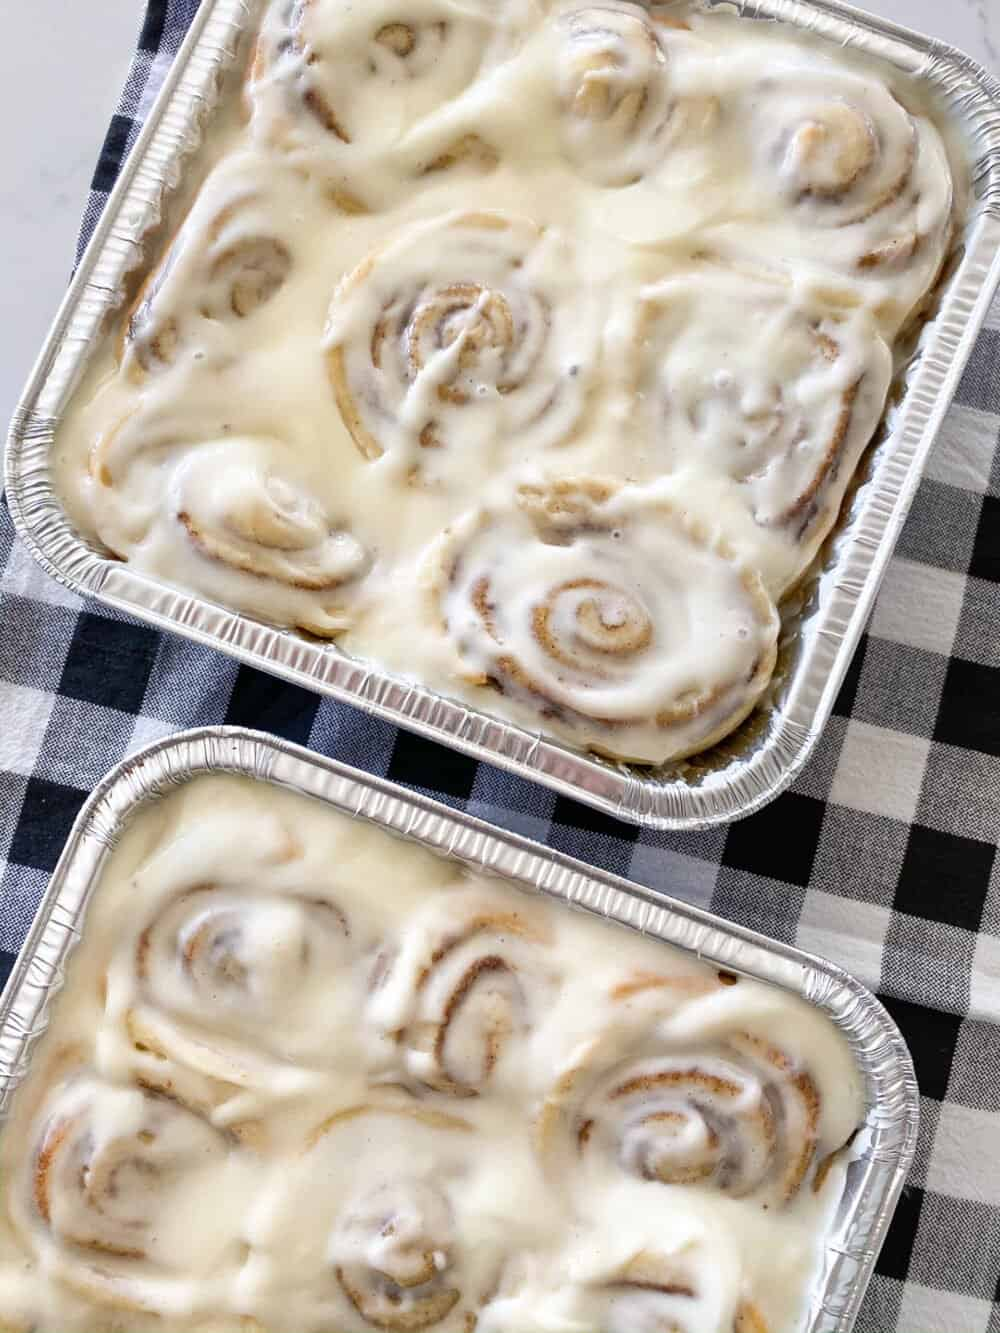 homemade cinnamon rolls in baking trays